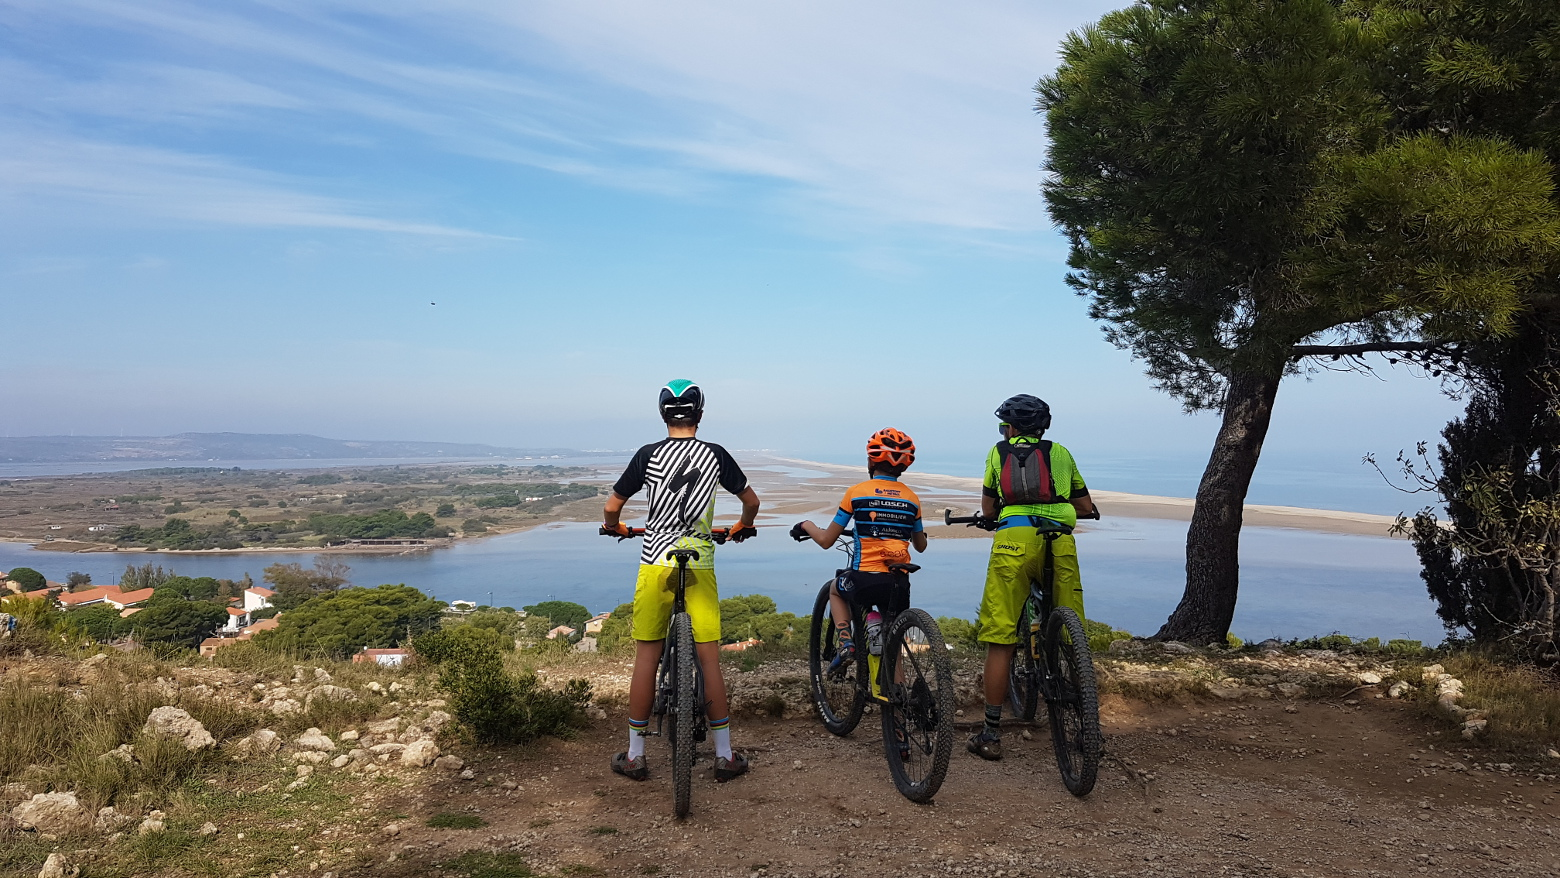 BIKE RIDES ON THE CLIFF LA FRANQUI